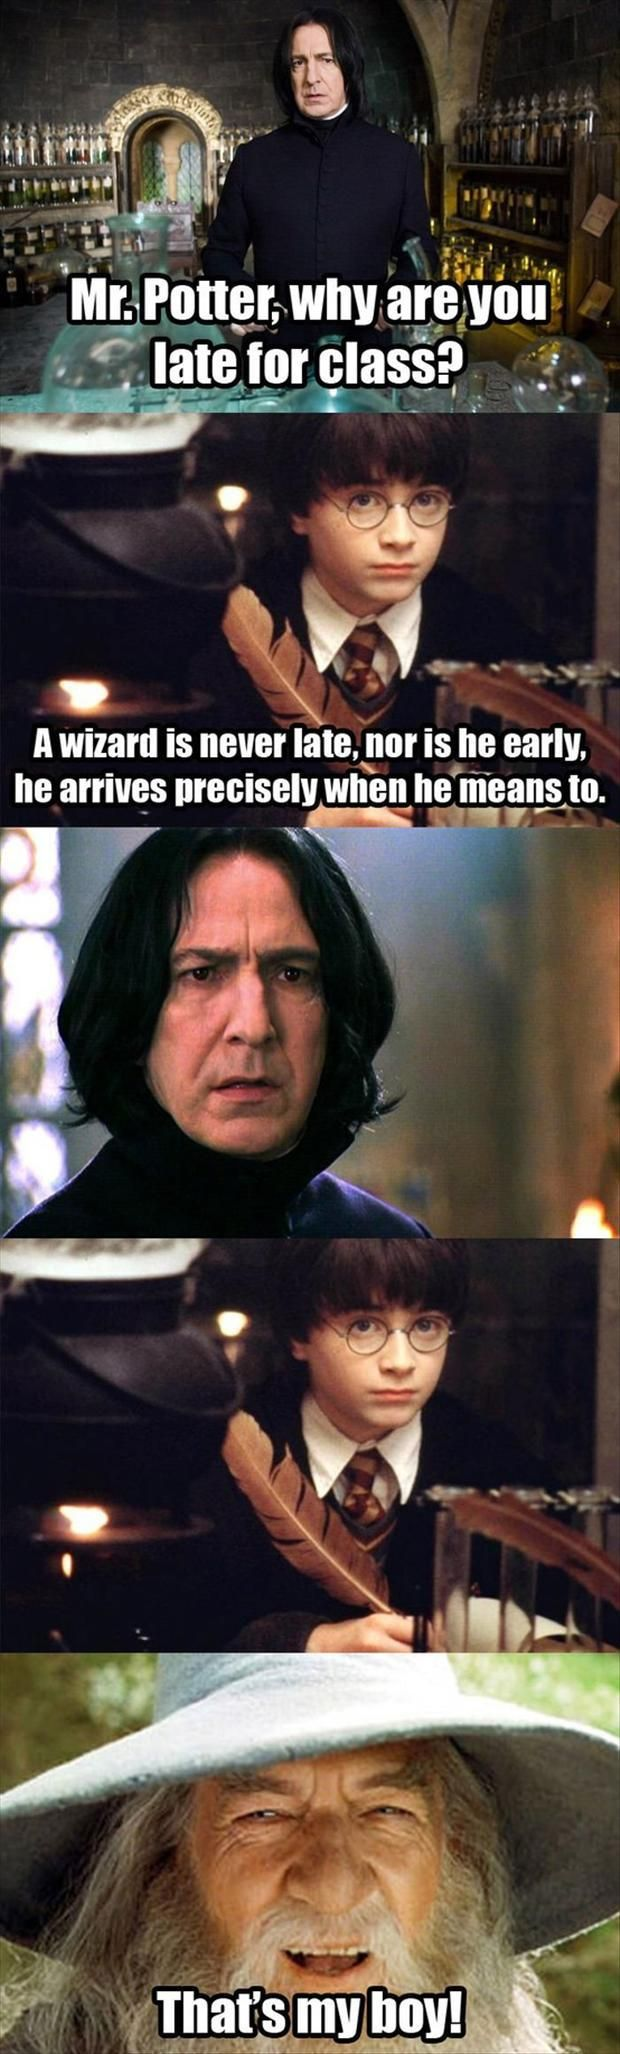 Funny Harry Potter Quotes Mesmerizing A Wizard Is Never Late Nor Is He Early Funny Harry Potter Quotes